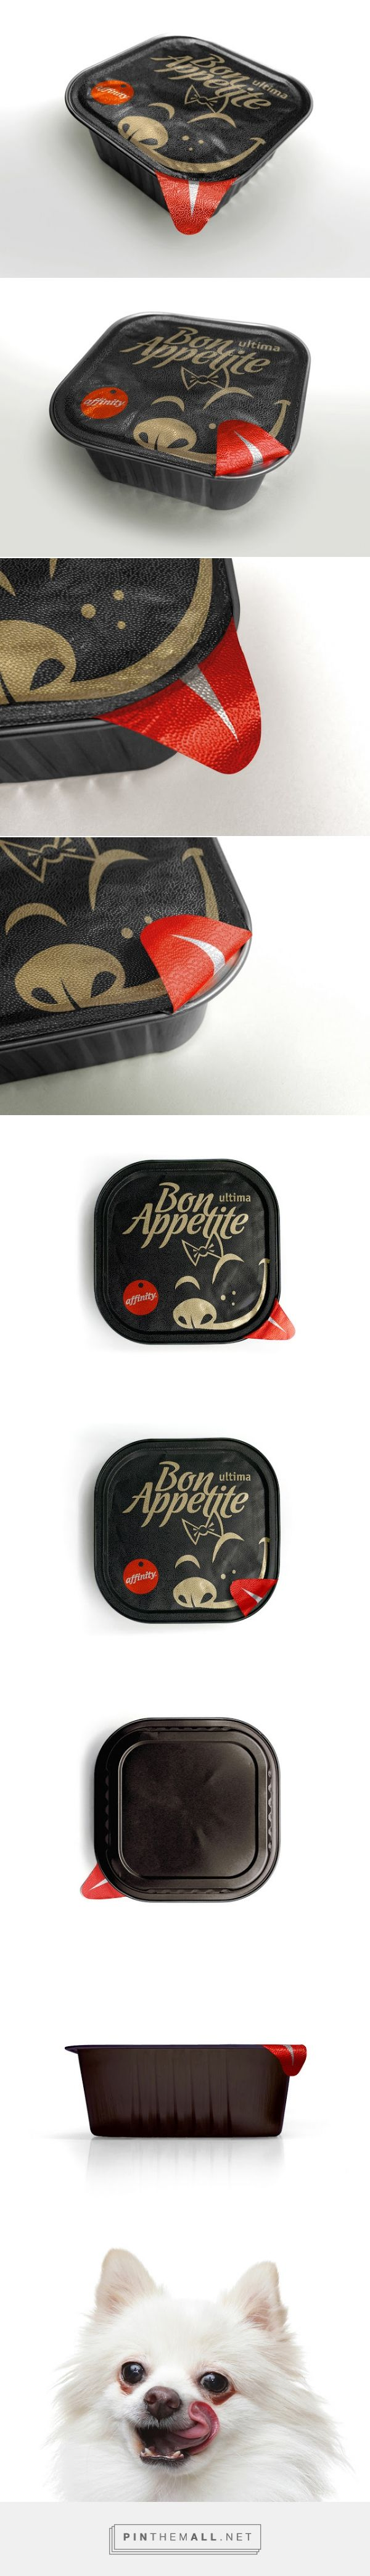 Affinity Ultima Bon Appetite pet food packaging designed by Marcal Prats - http://www.packagingoftheworld.com/2016/01/affinity-ultima-bon-appetite-concept.html